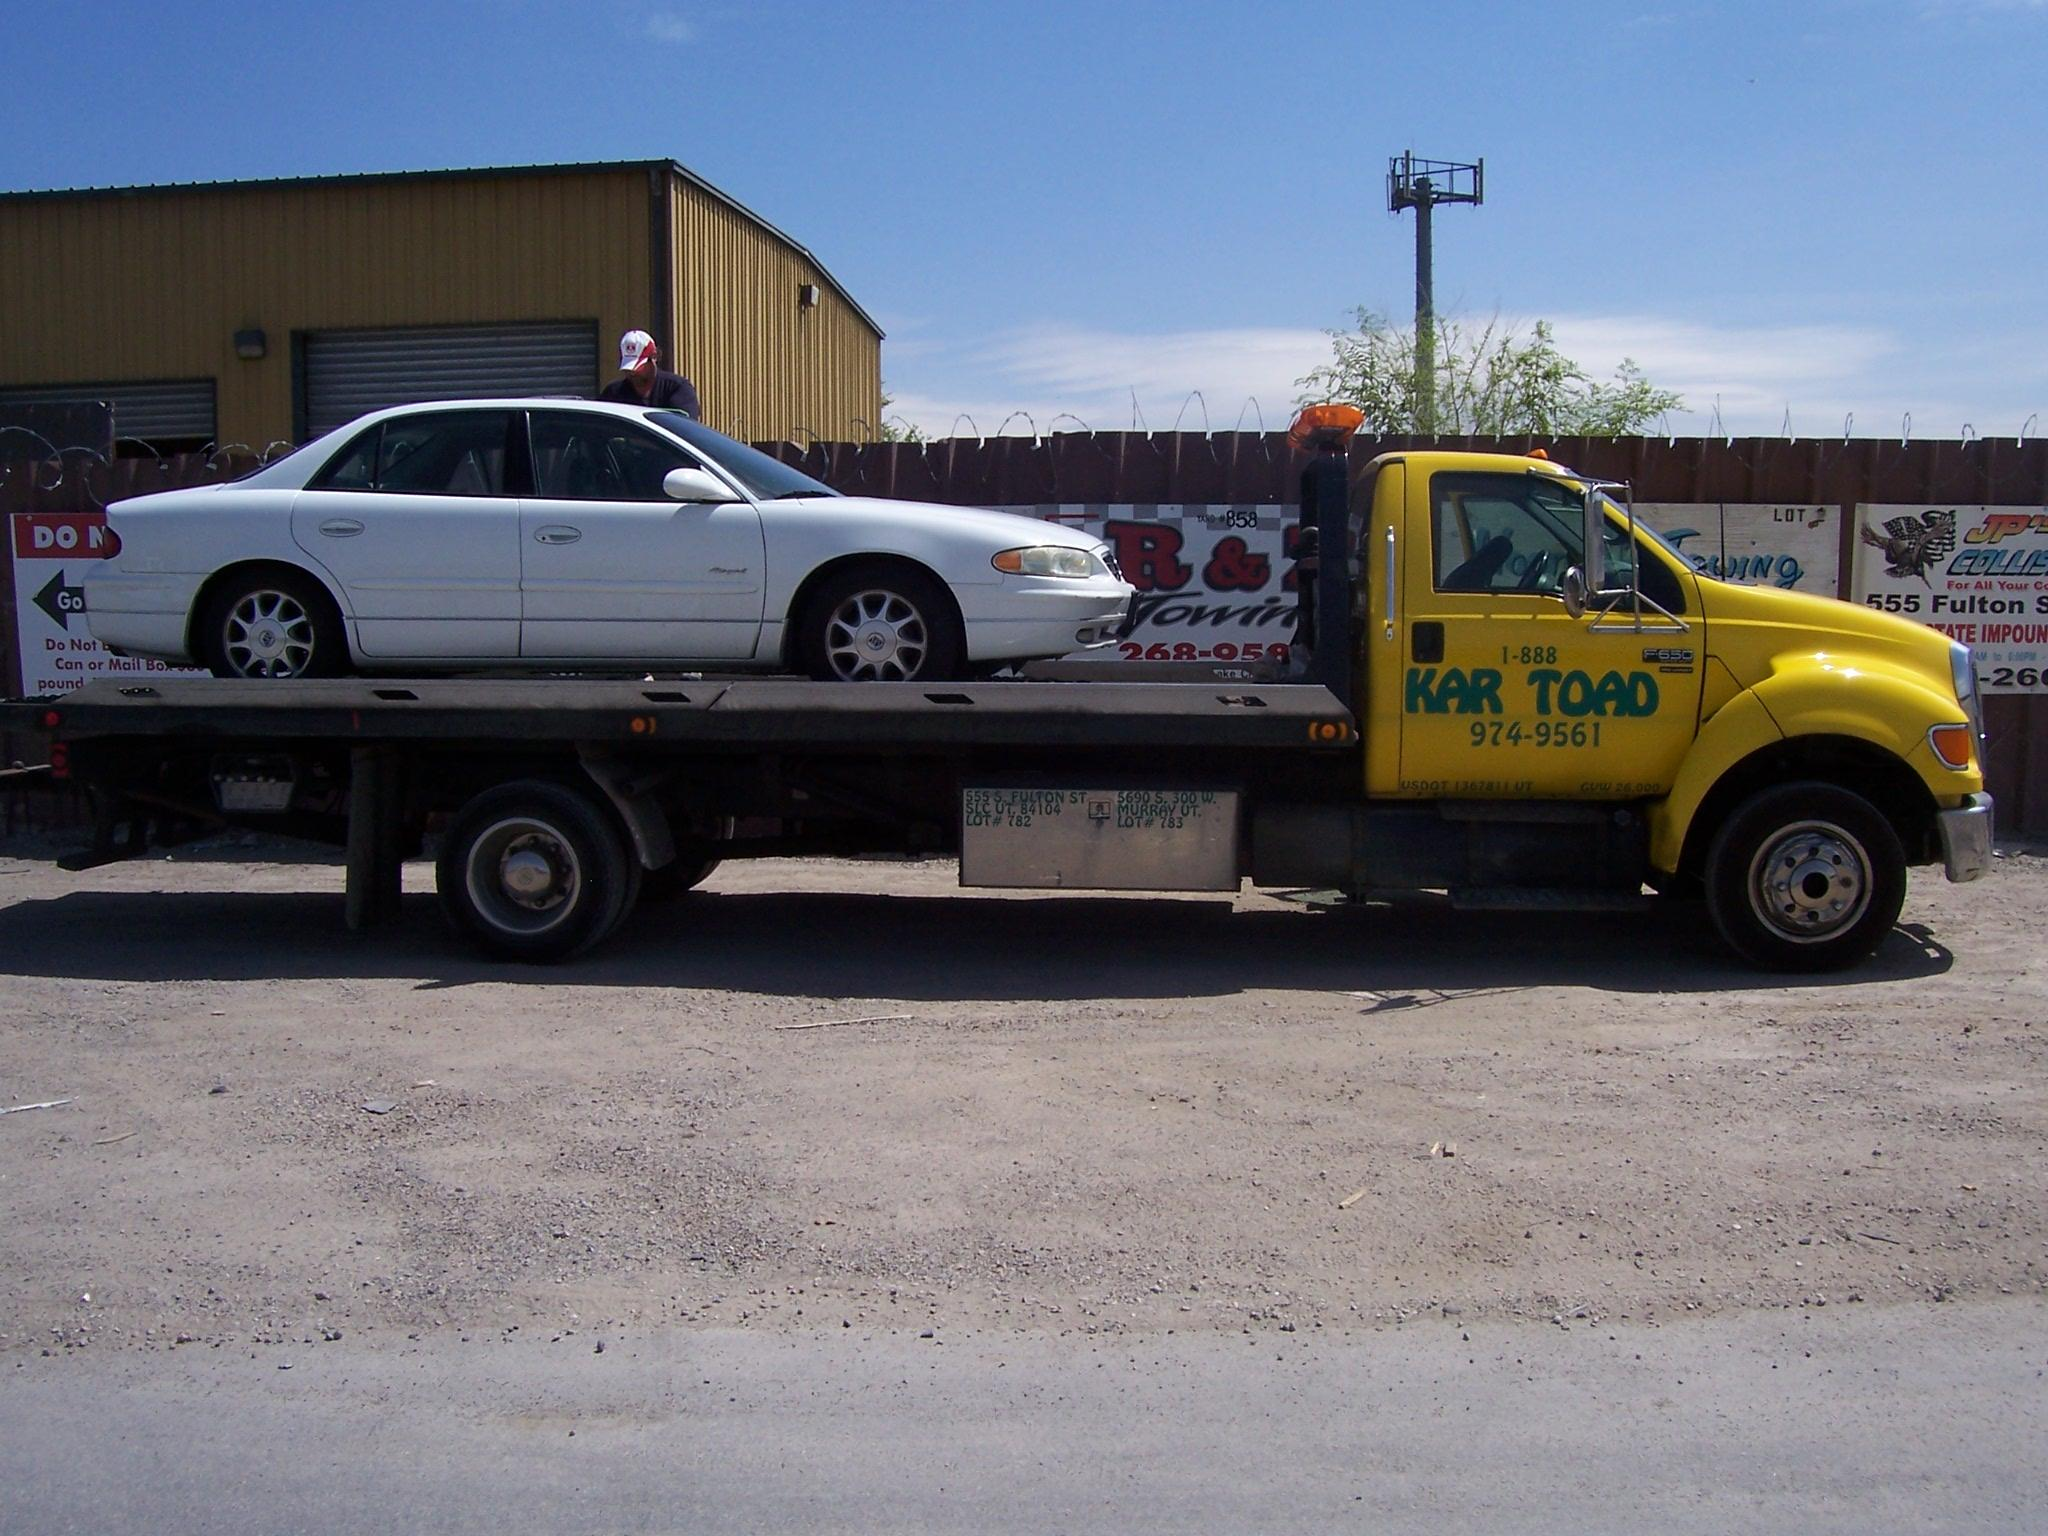 Evans and Sons Auto and Towing image 5